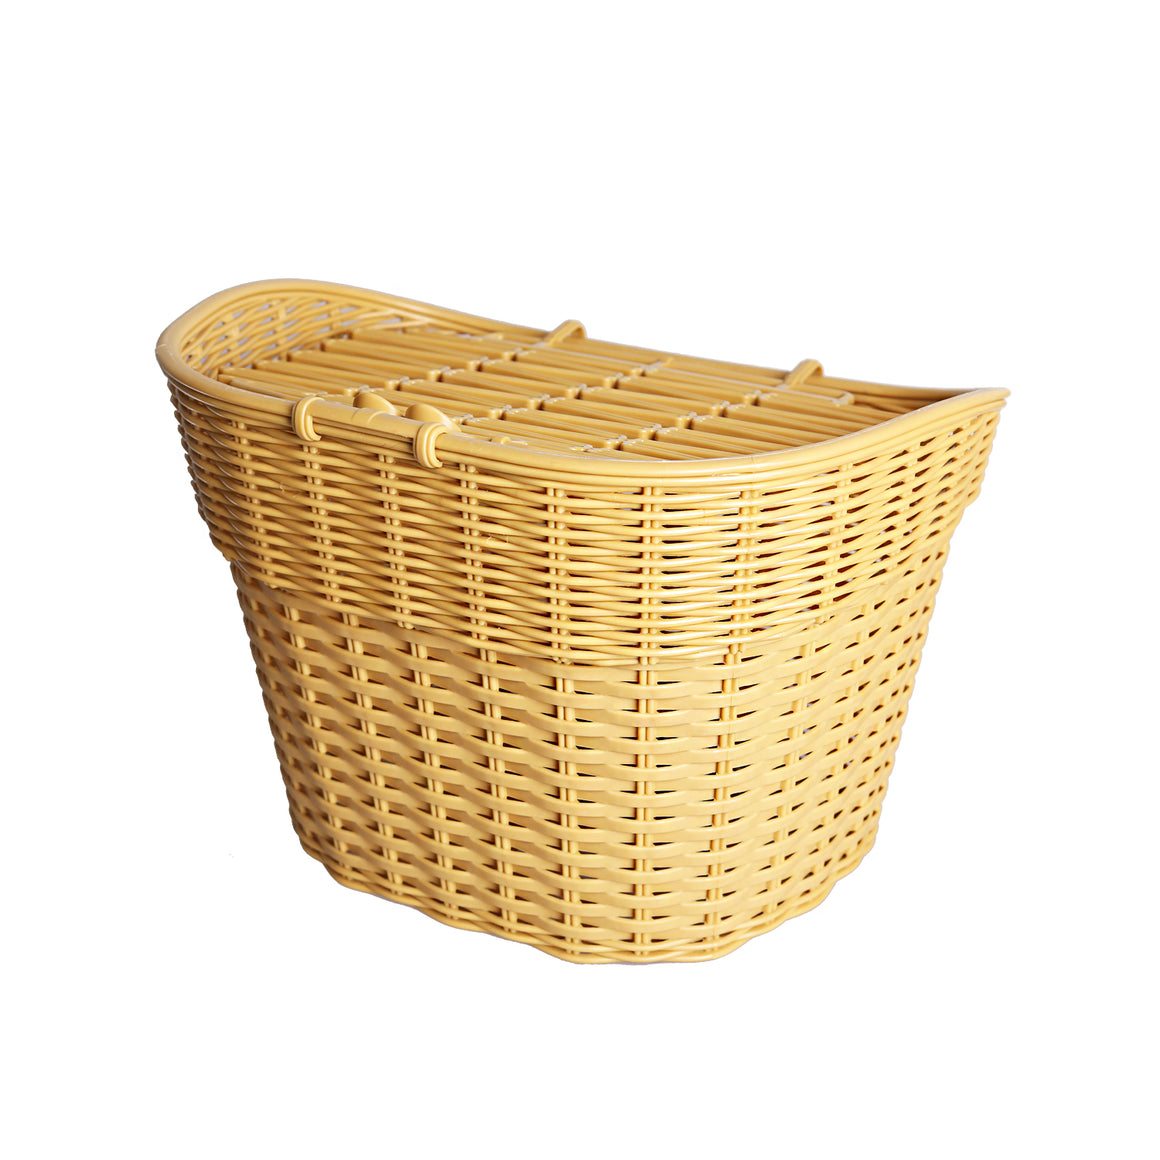 Basket for nakto ebikes - Nakto e-bike